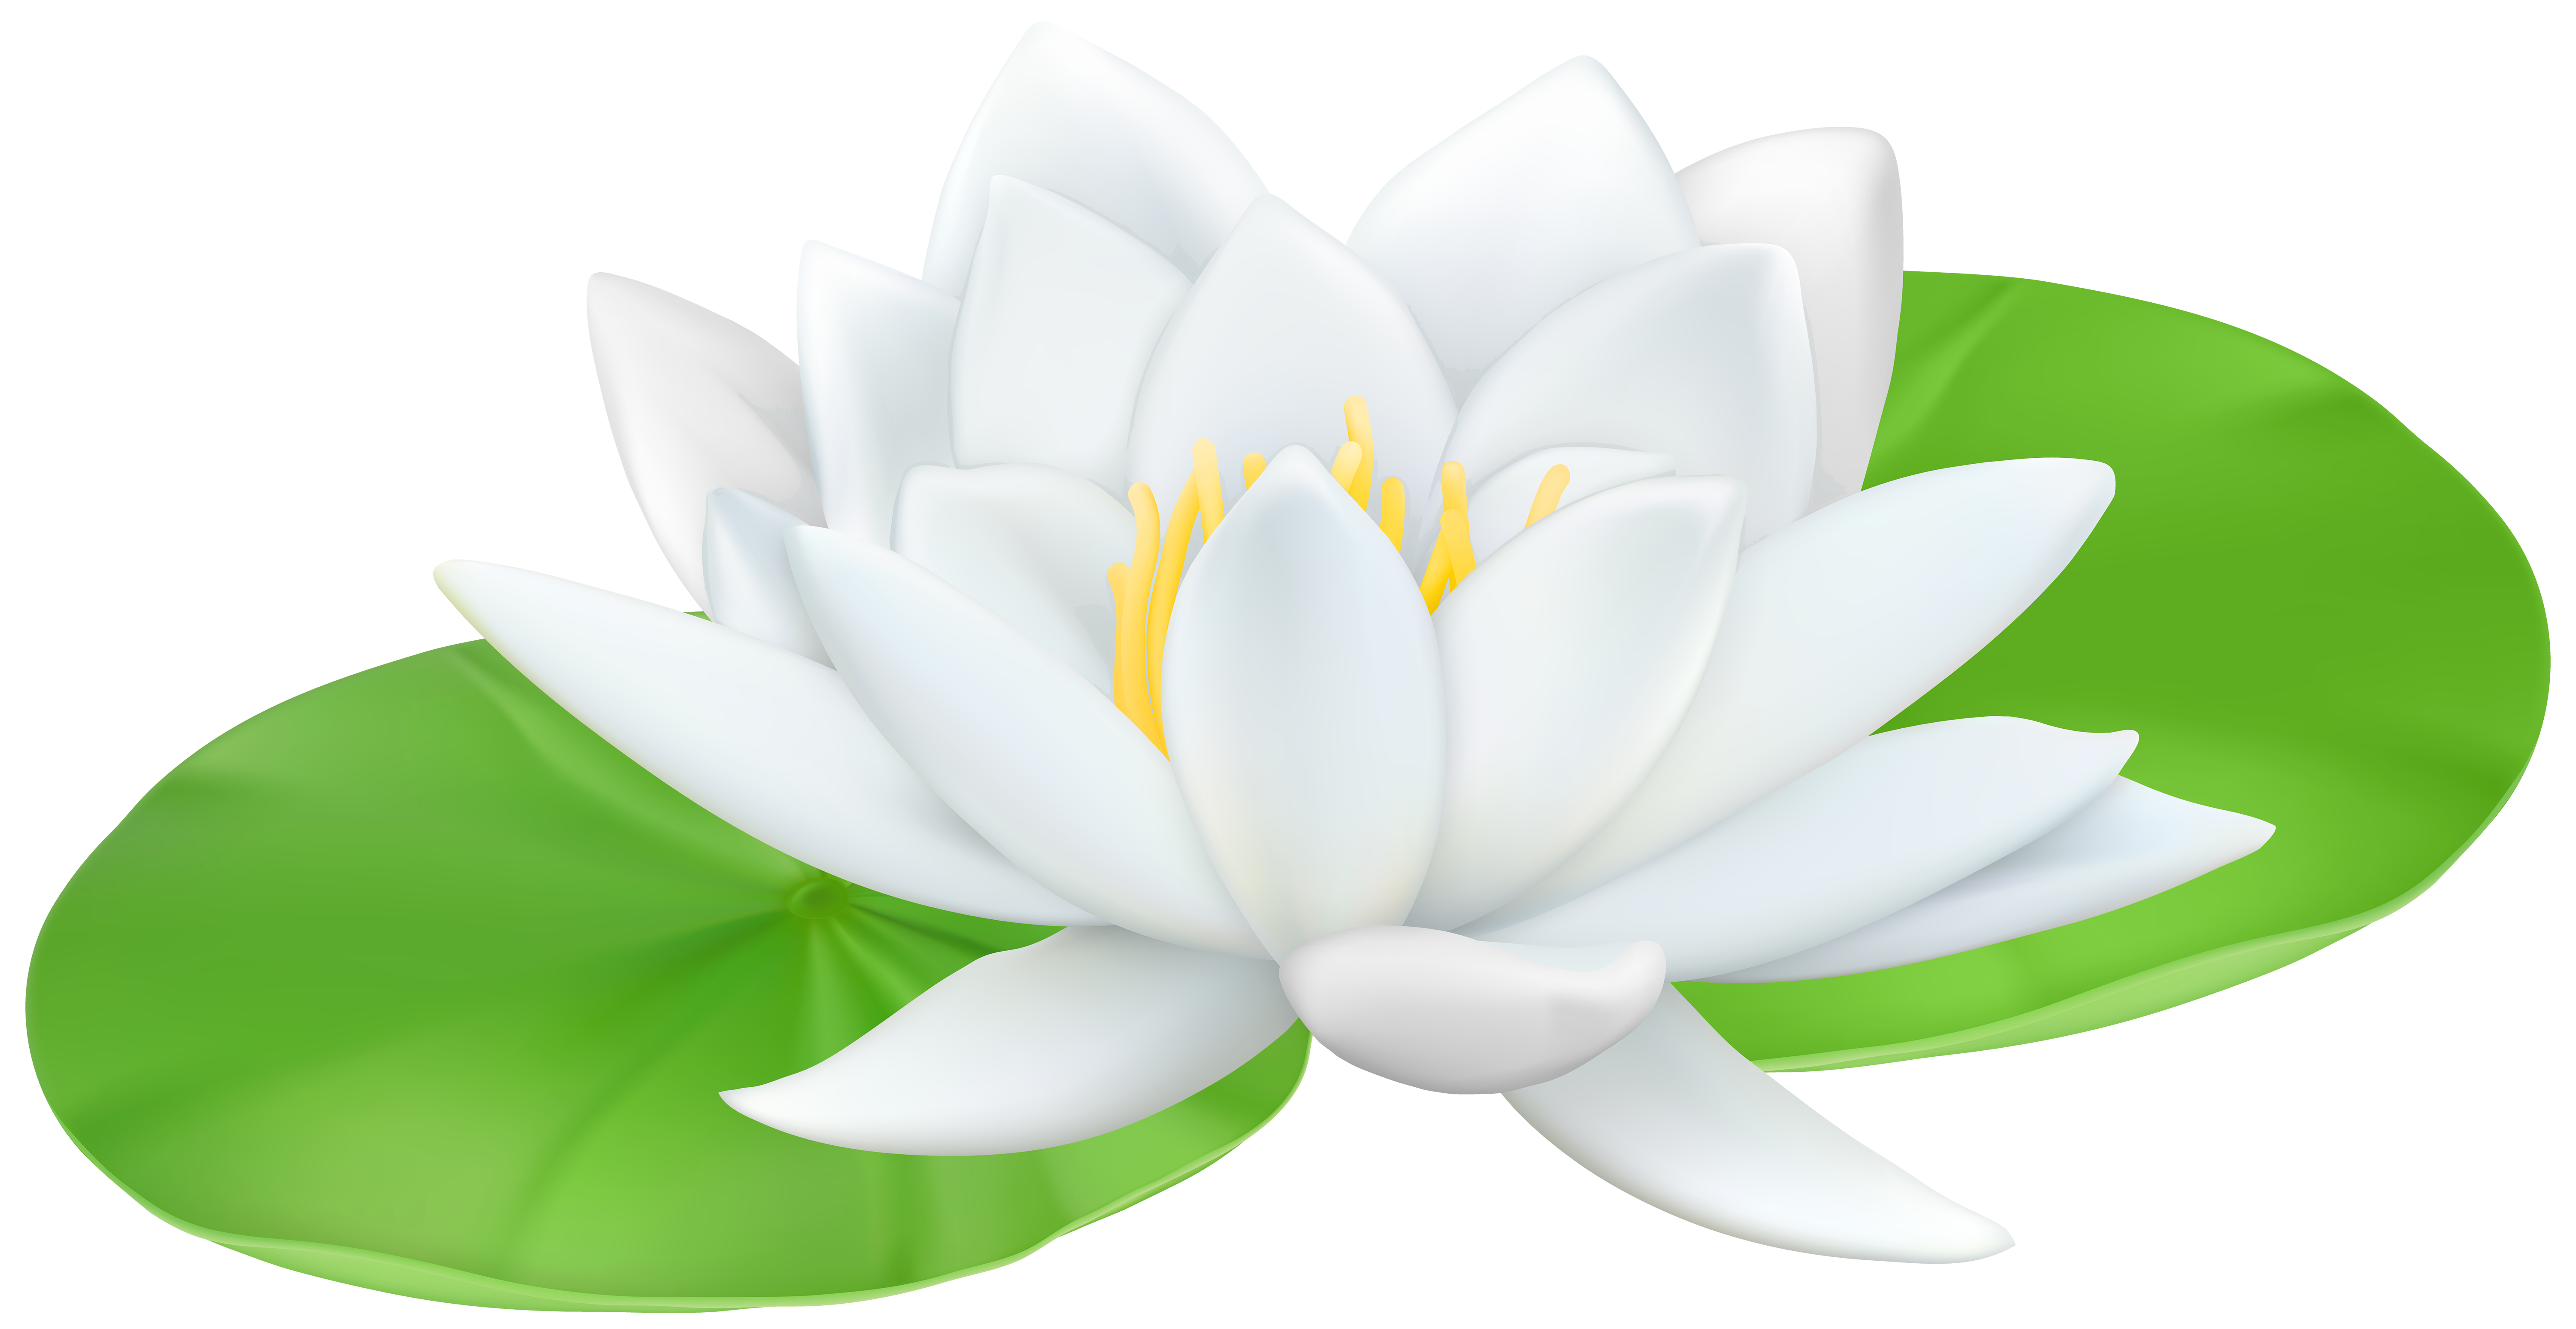 Water Lily clipart #3, Download drawings